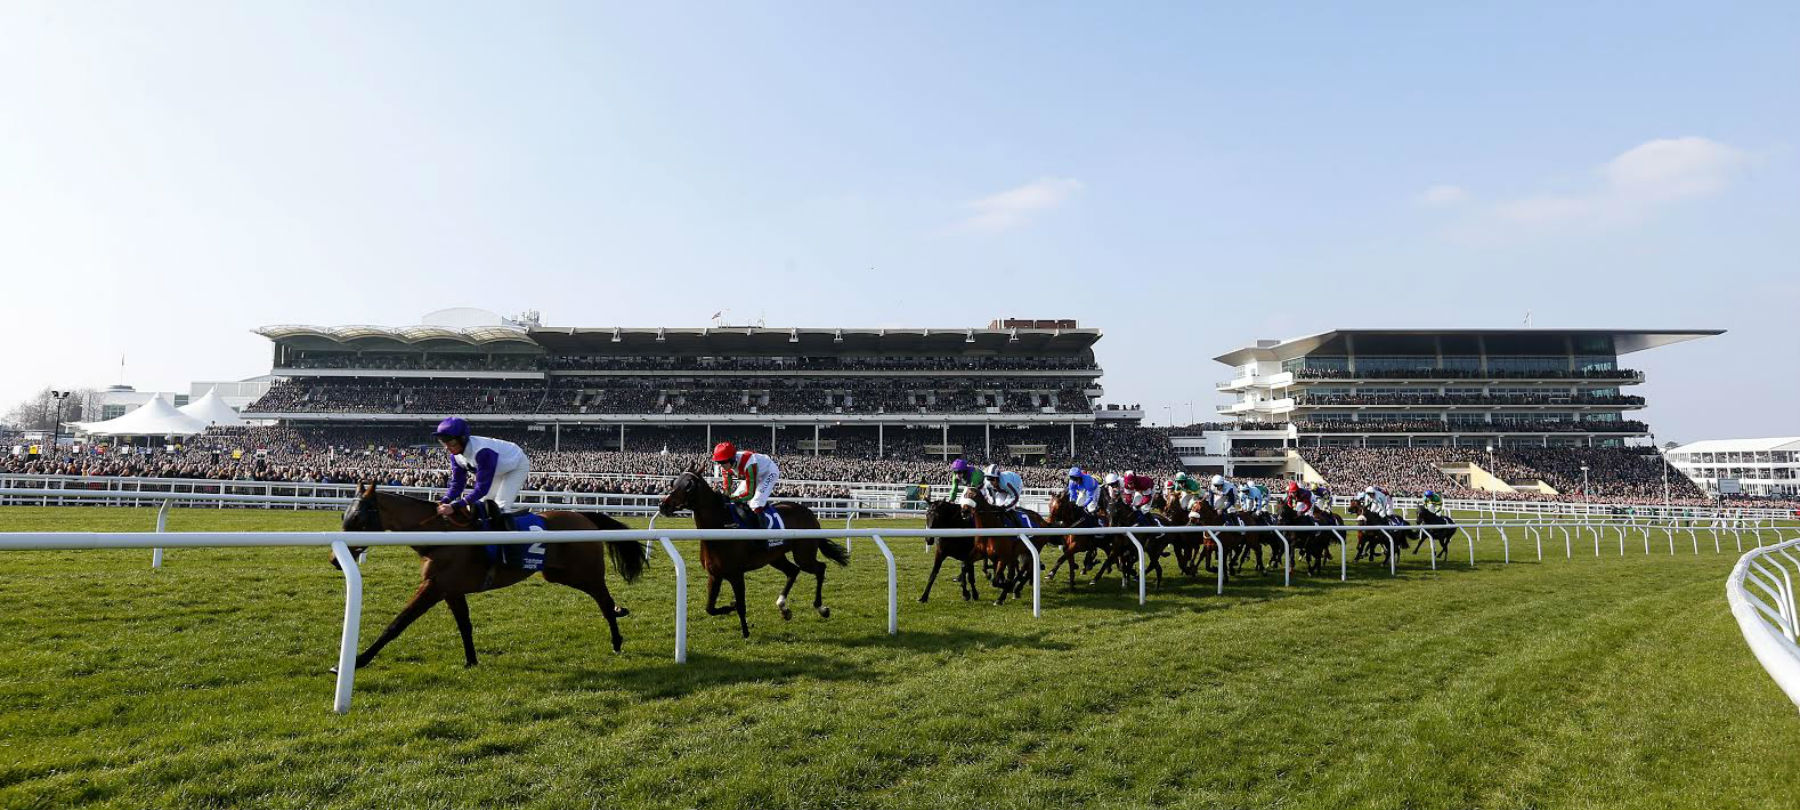 Copy of grandstand-horses-from-track-hero.jpg